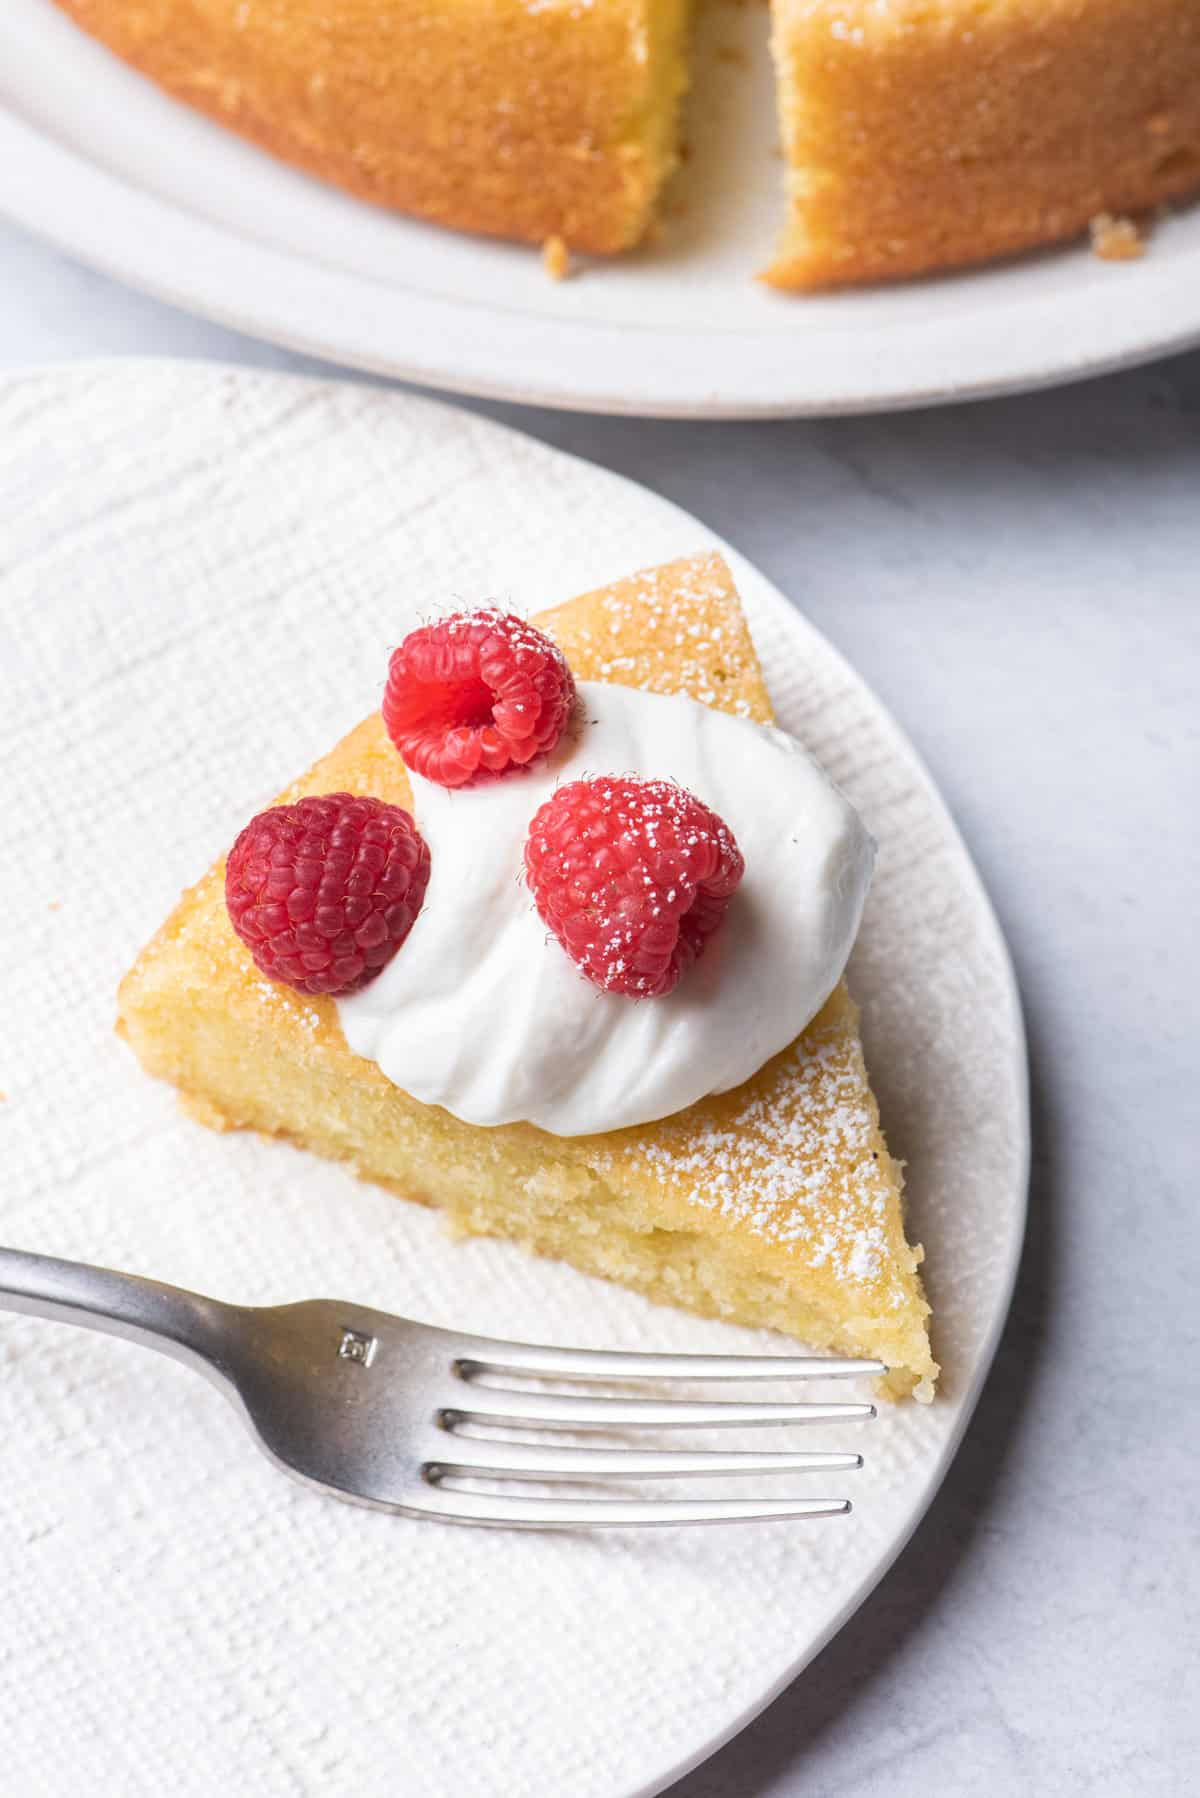 Slice of olive oil cake on a small plate topped with whipped cream and raspberries